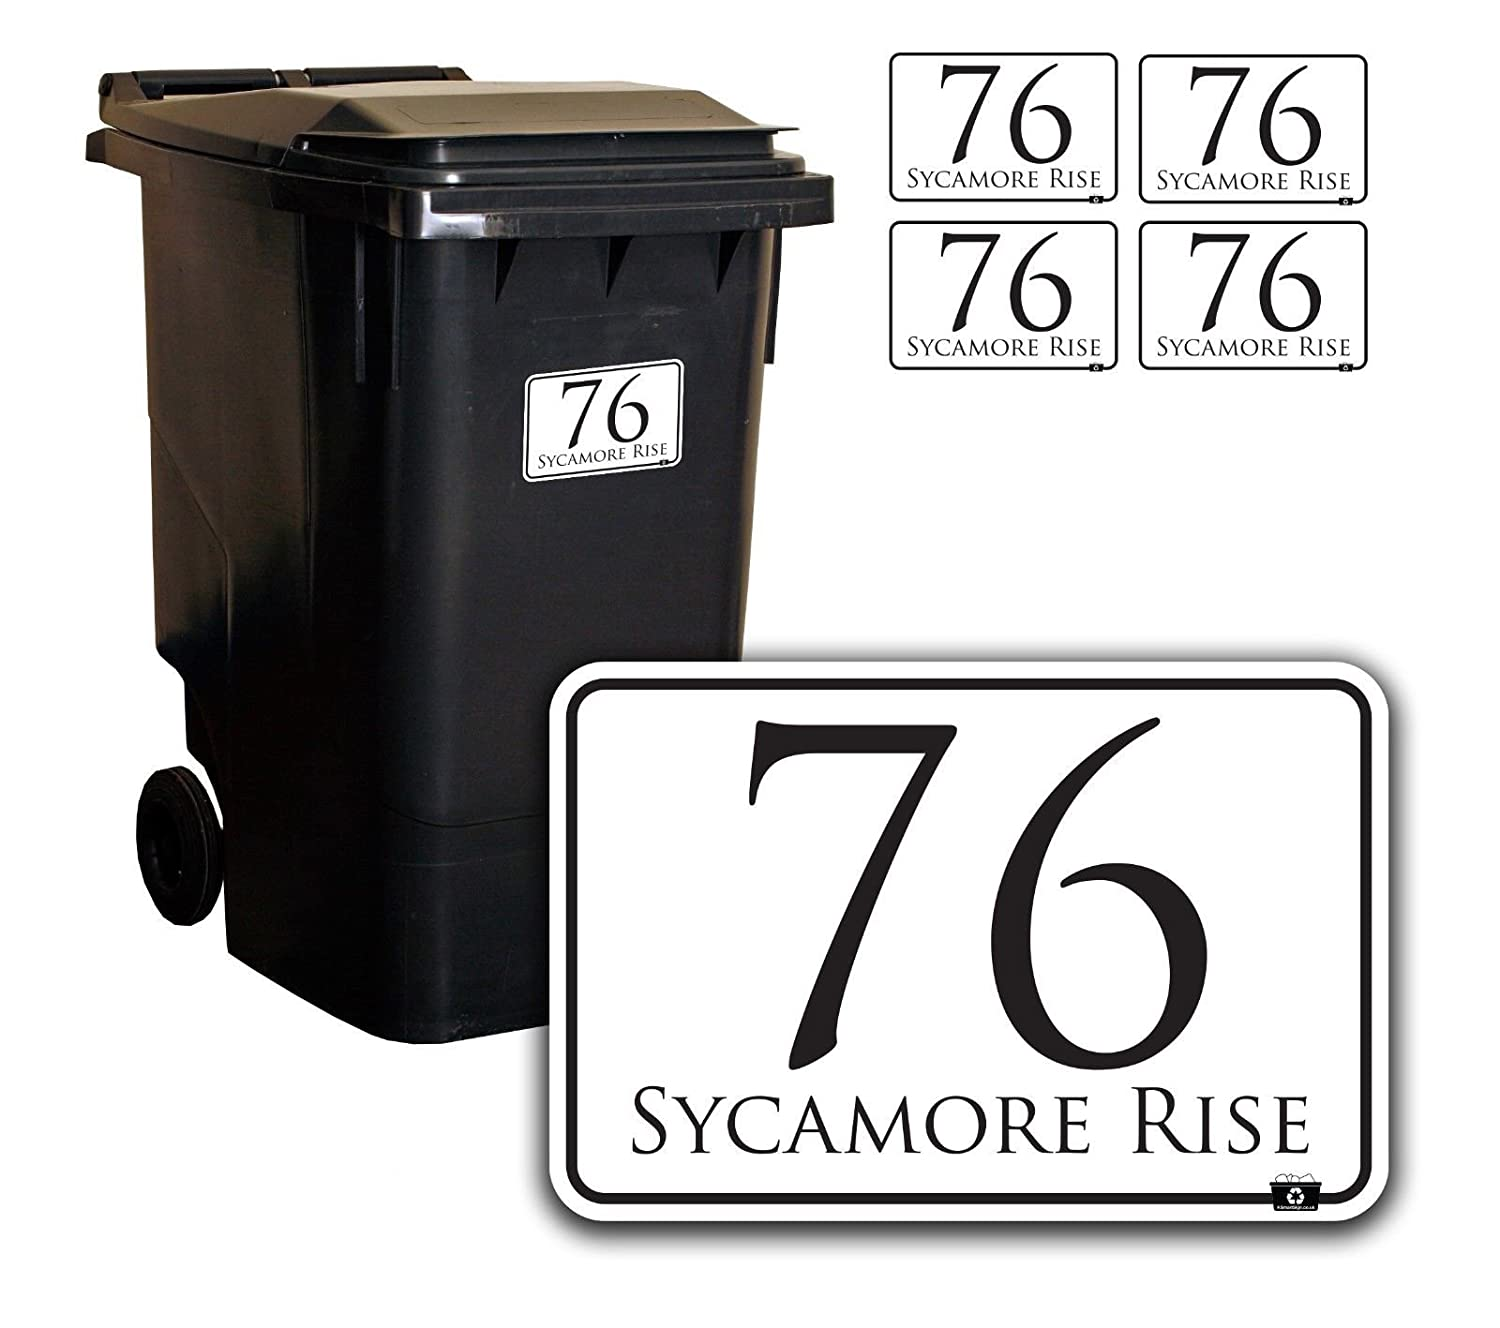 Personalised Printed Wheelie Bin Number Stickers with number and road Name - A6 Vinyl Waste Container Decals - set of 4 K Smart Sign Ltd